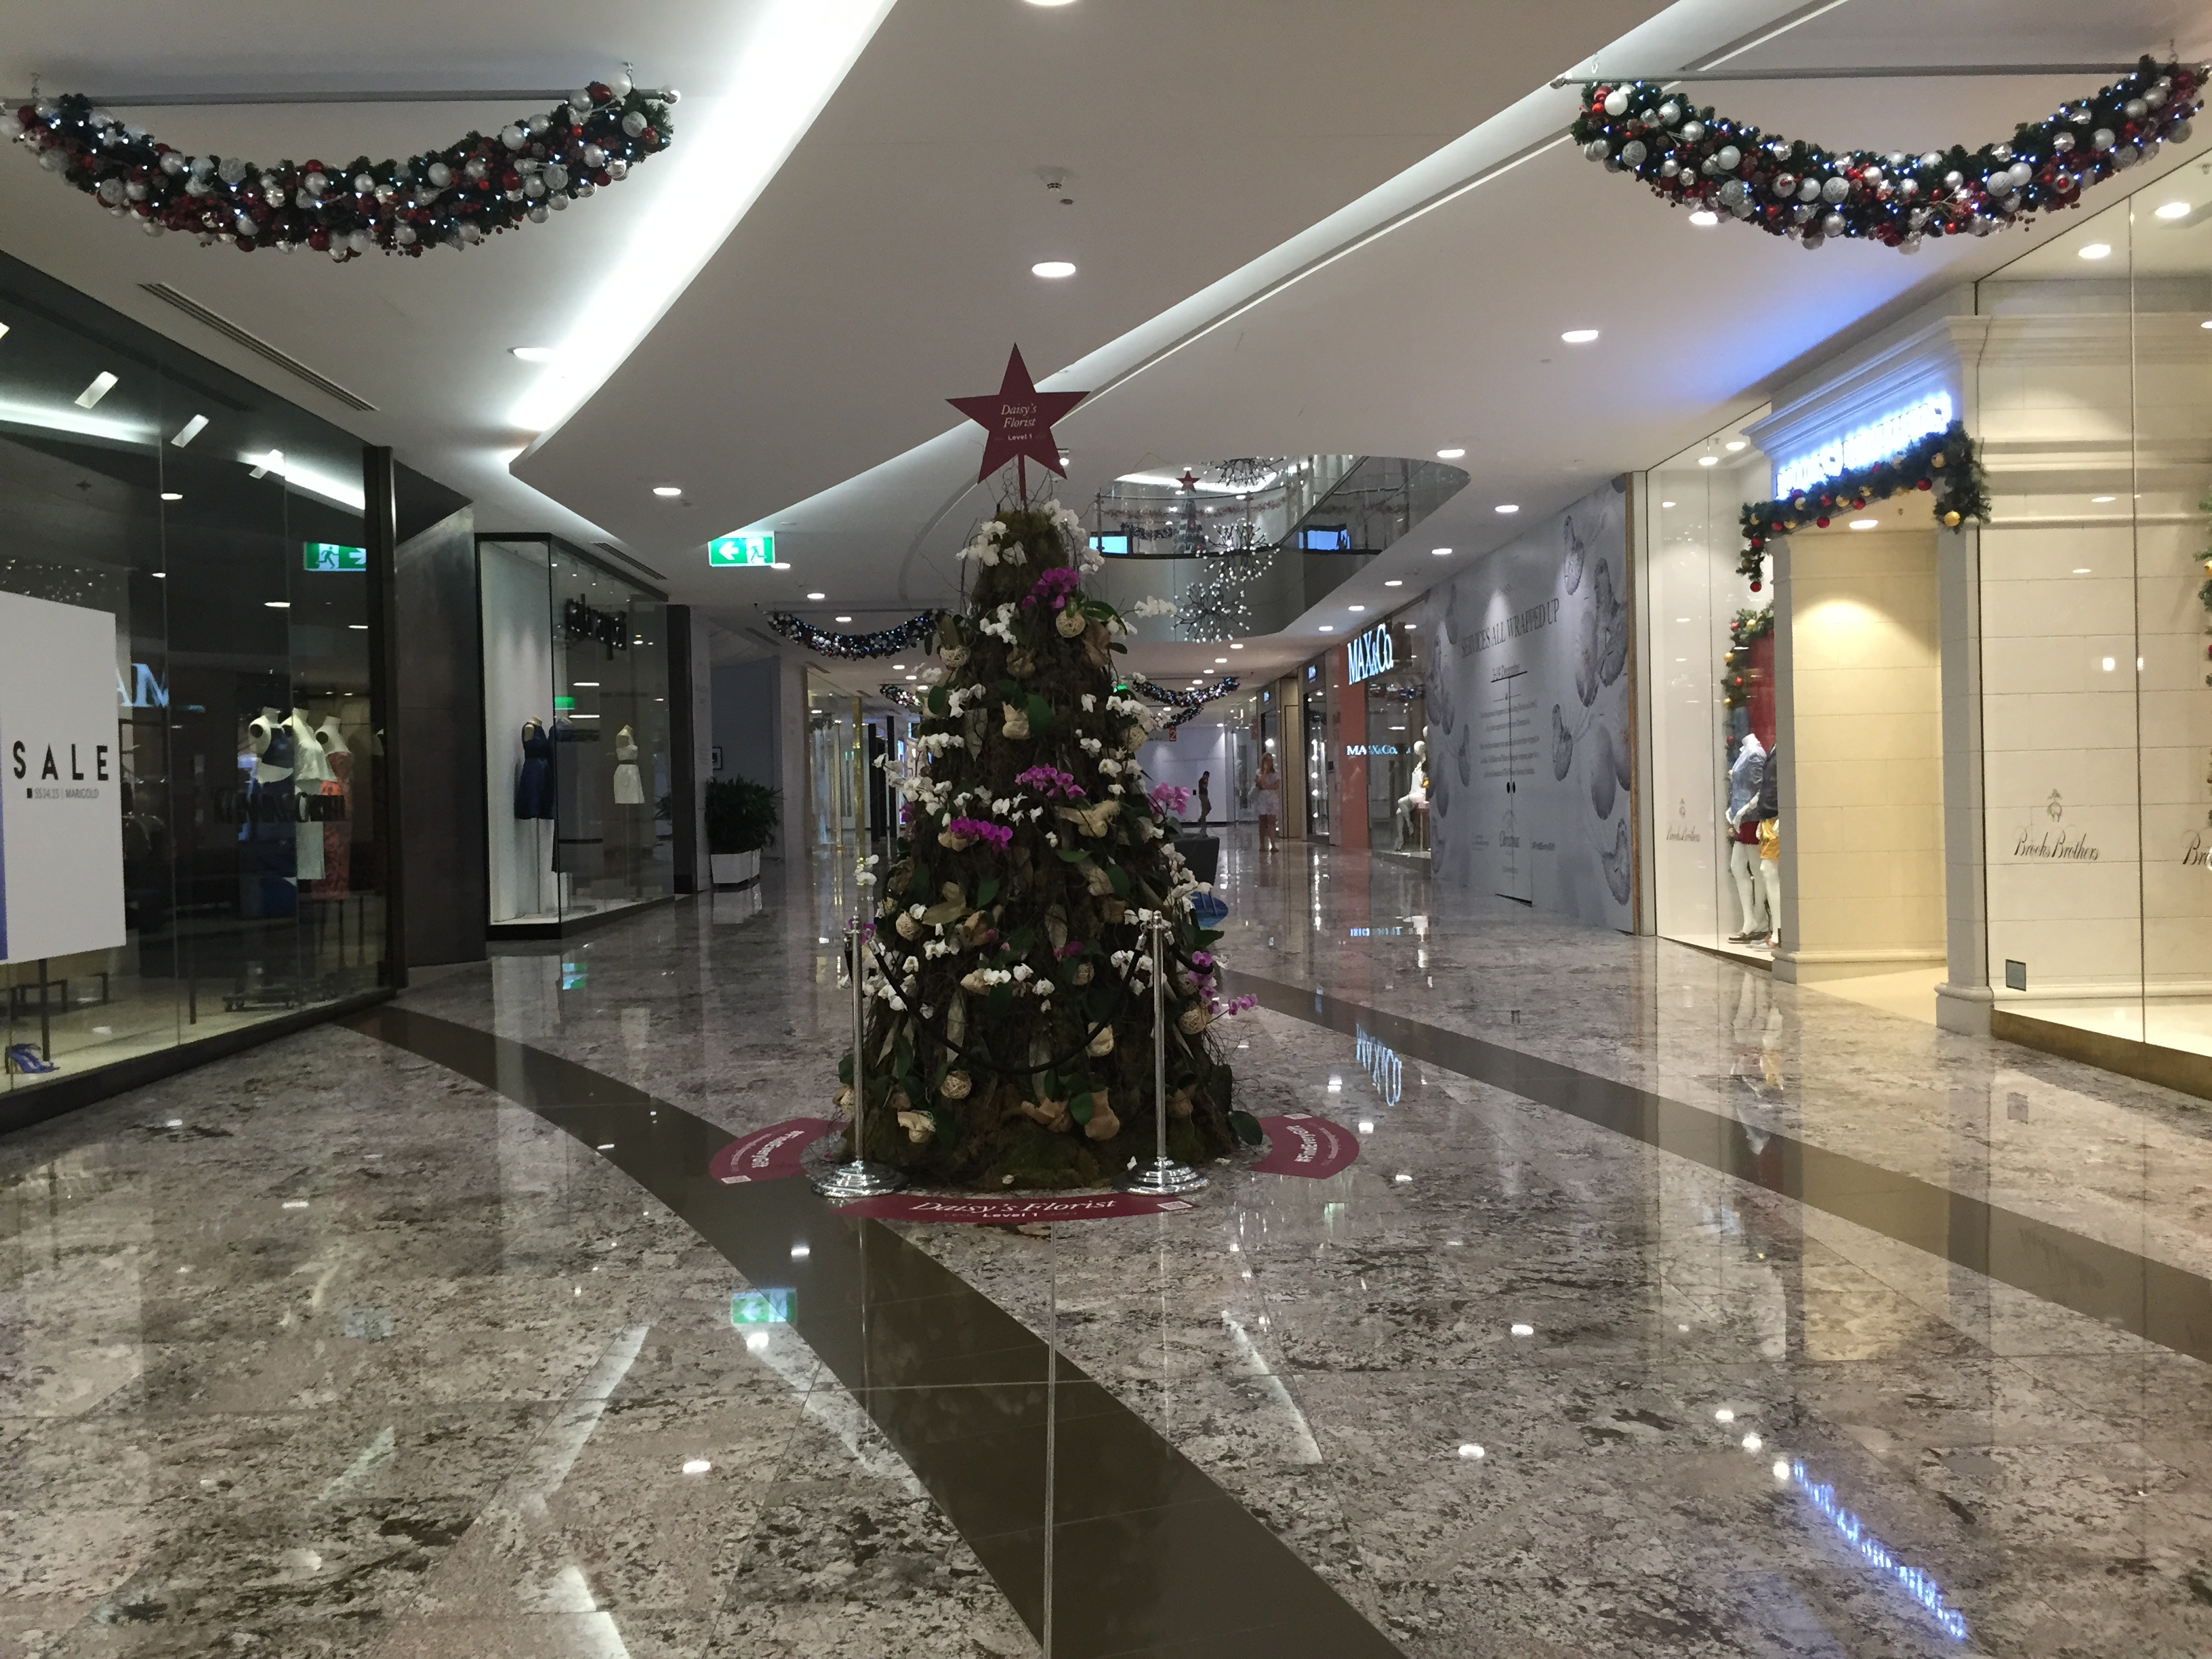 File:Christmas trees in Indooroopilly Shopping Centre